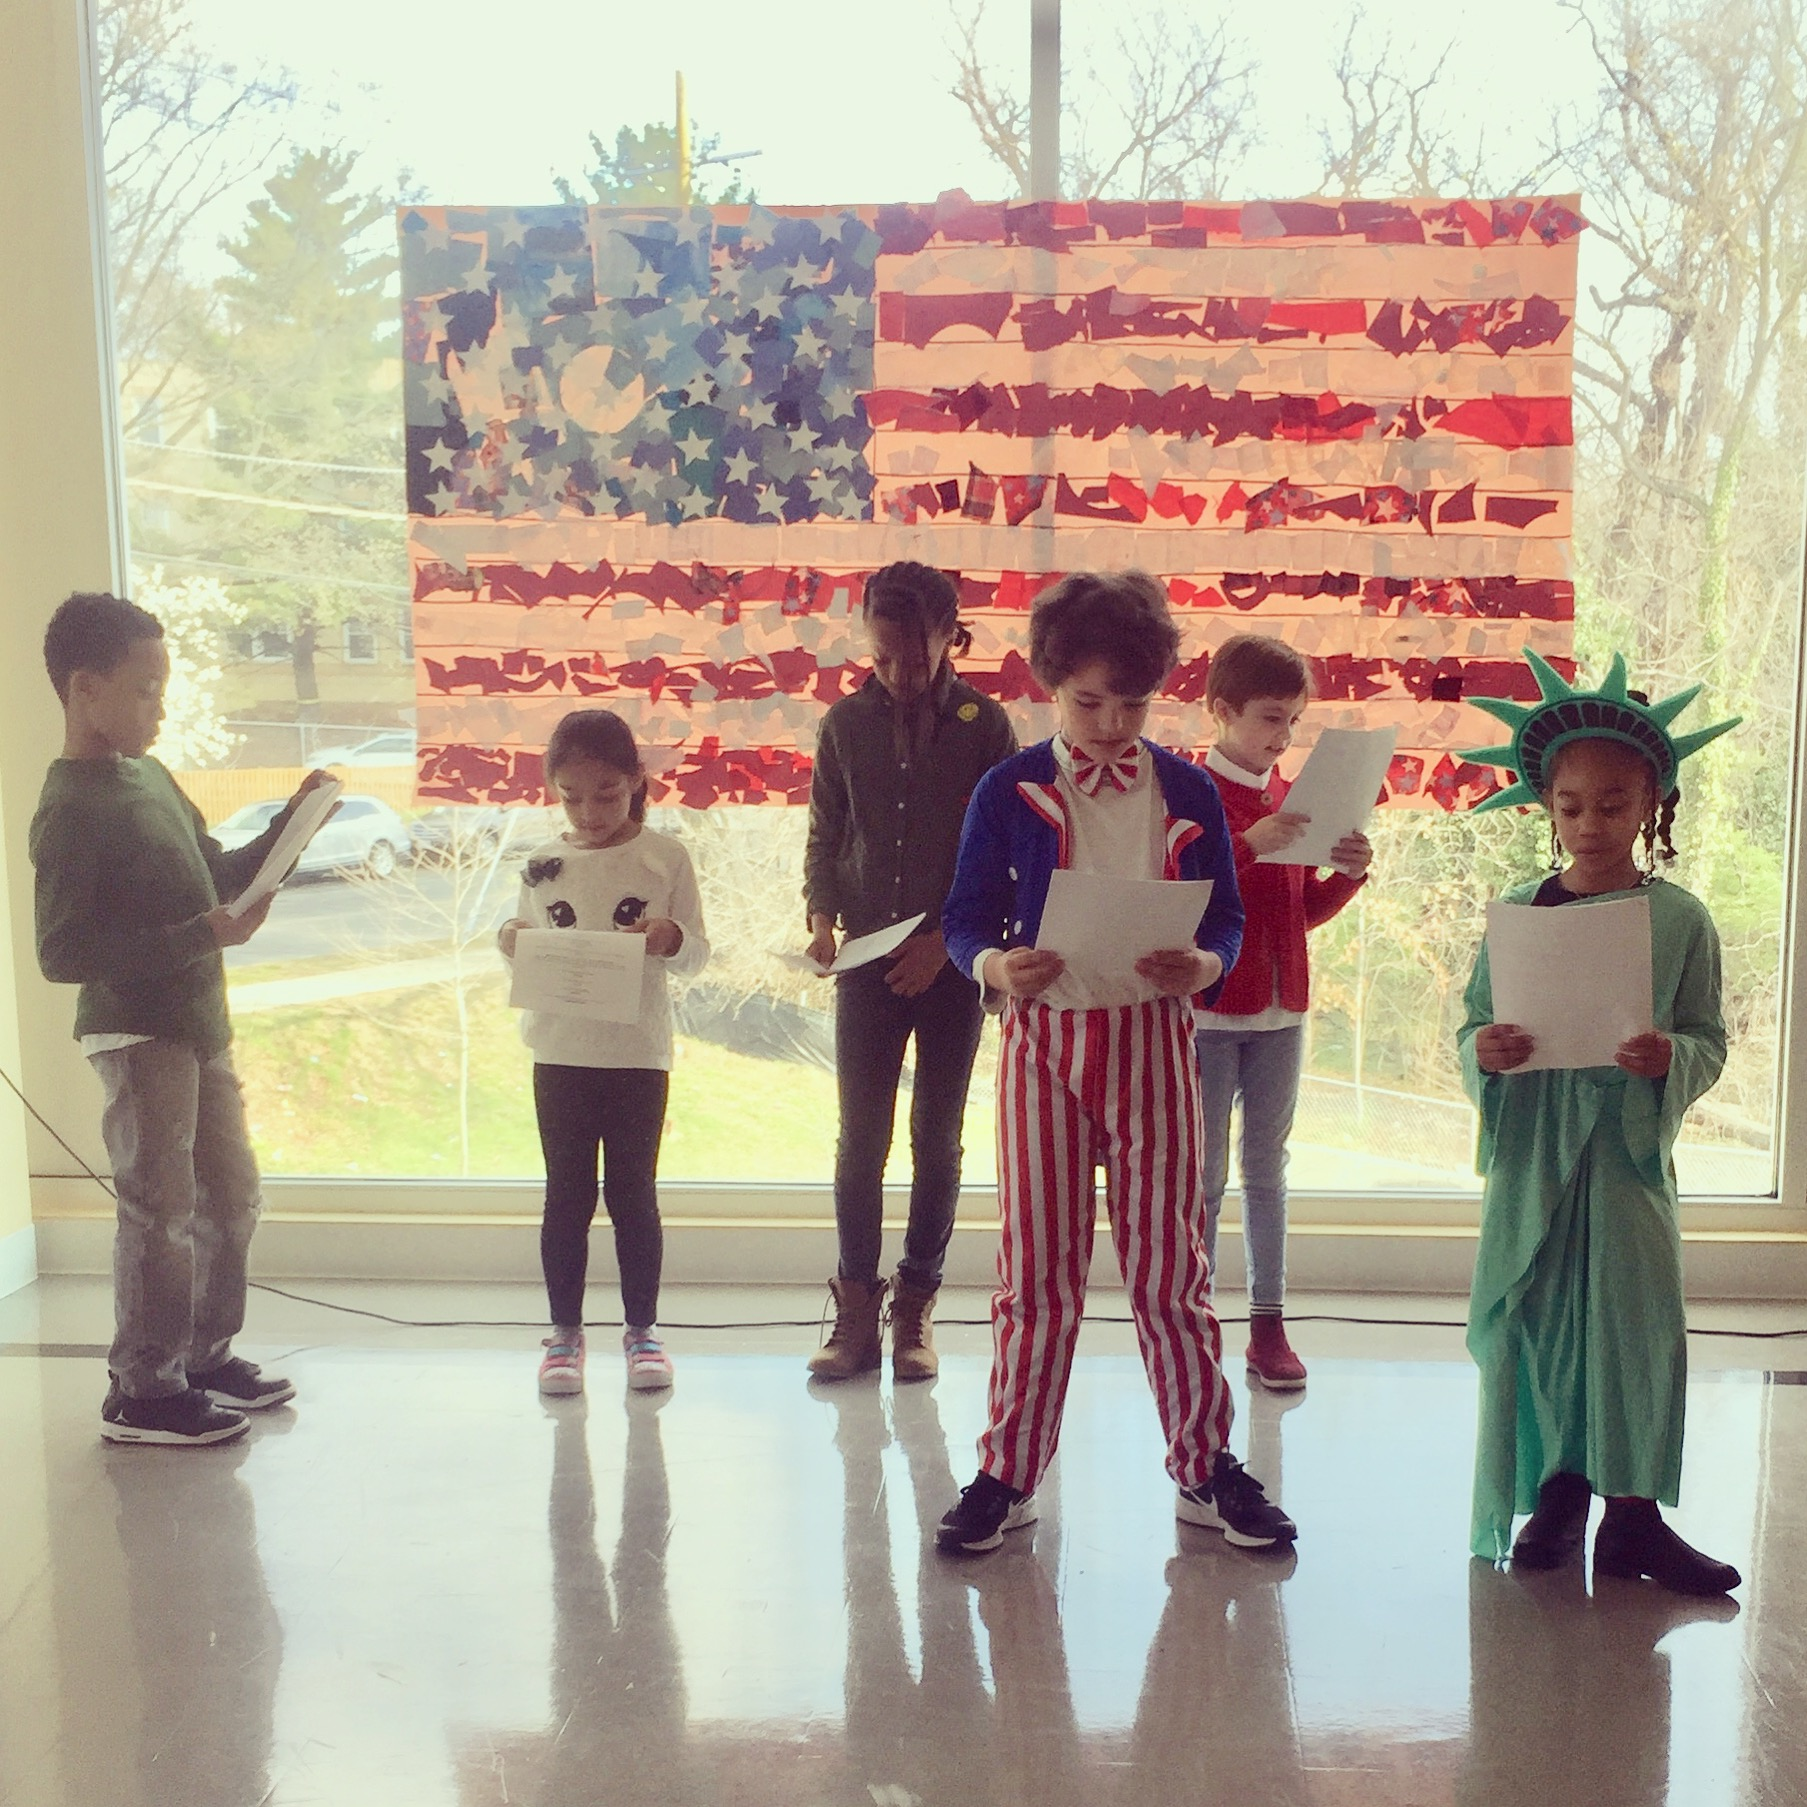 Bridges' Annual America Celebration spring 2018. Uncle Samantha, Lady Liberty and four citizen who represent the diversity of our inclusive country.